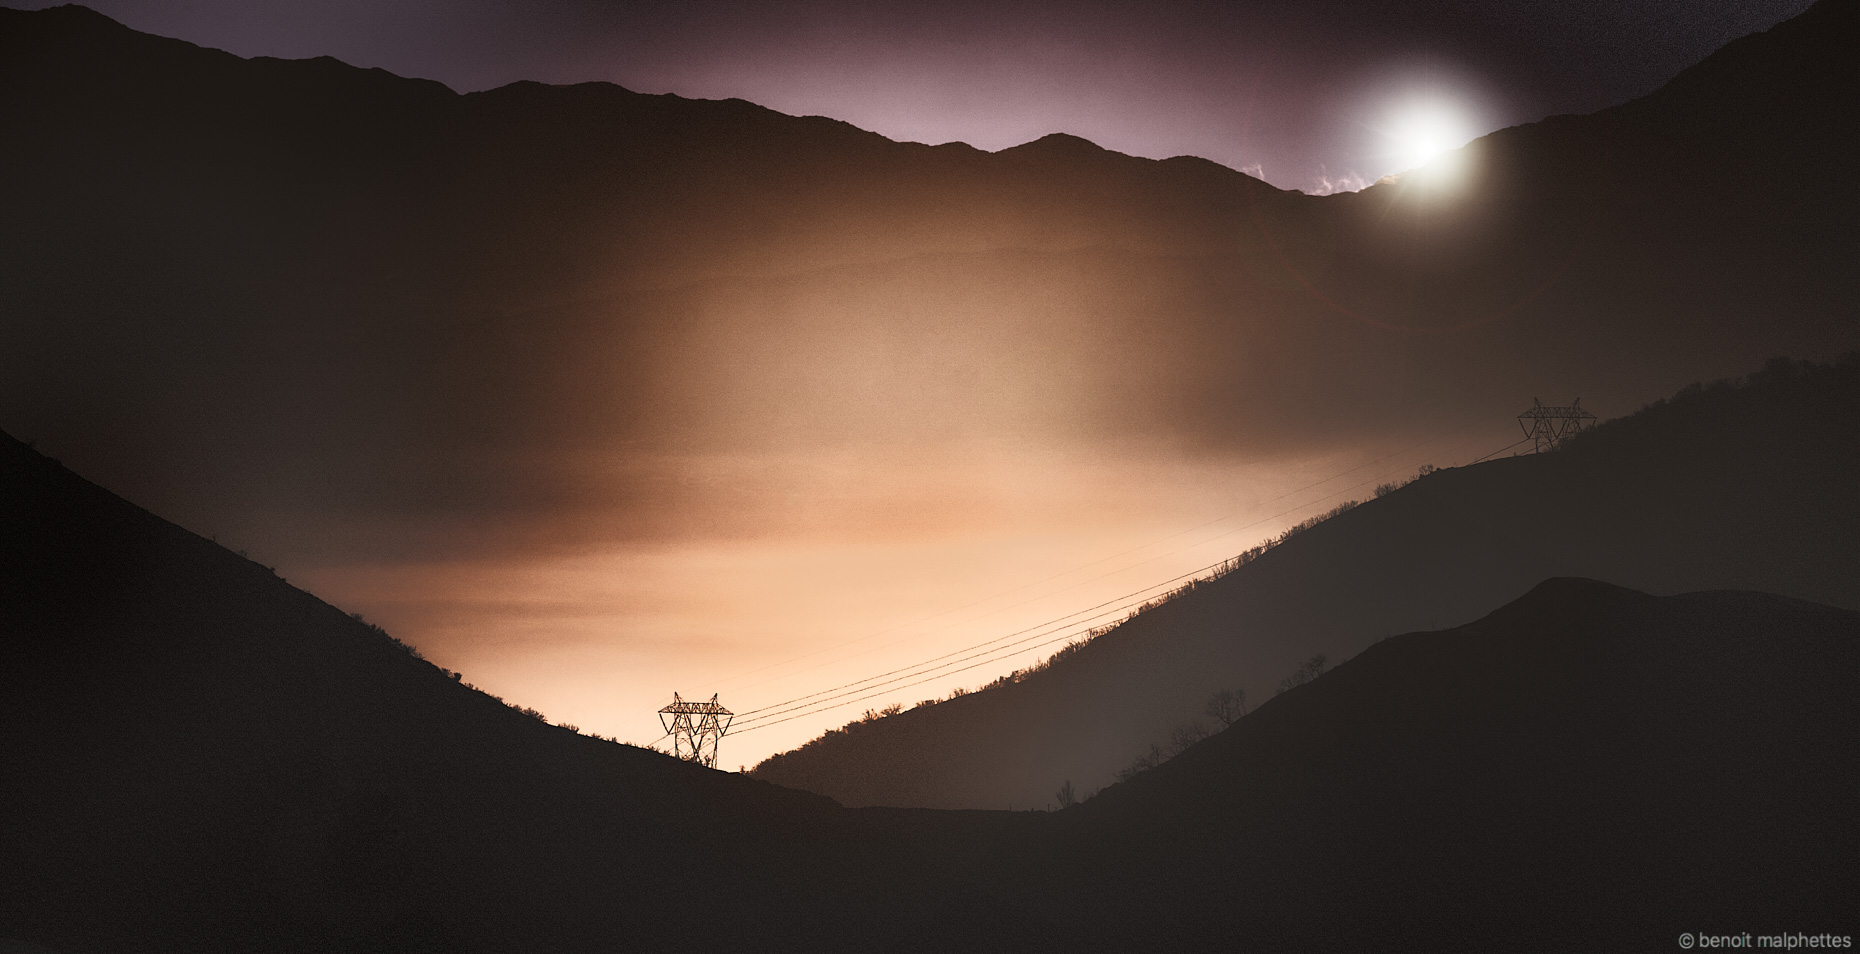 Sunrise in the San Bernardino Mountains near Los Angeles as photographed by Benoit Malphettes